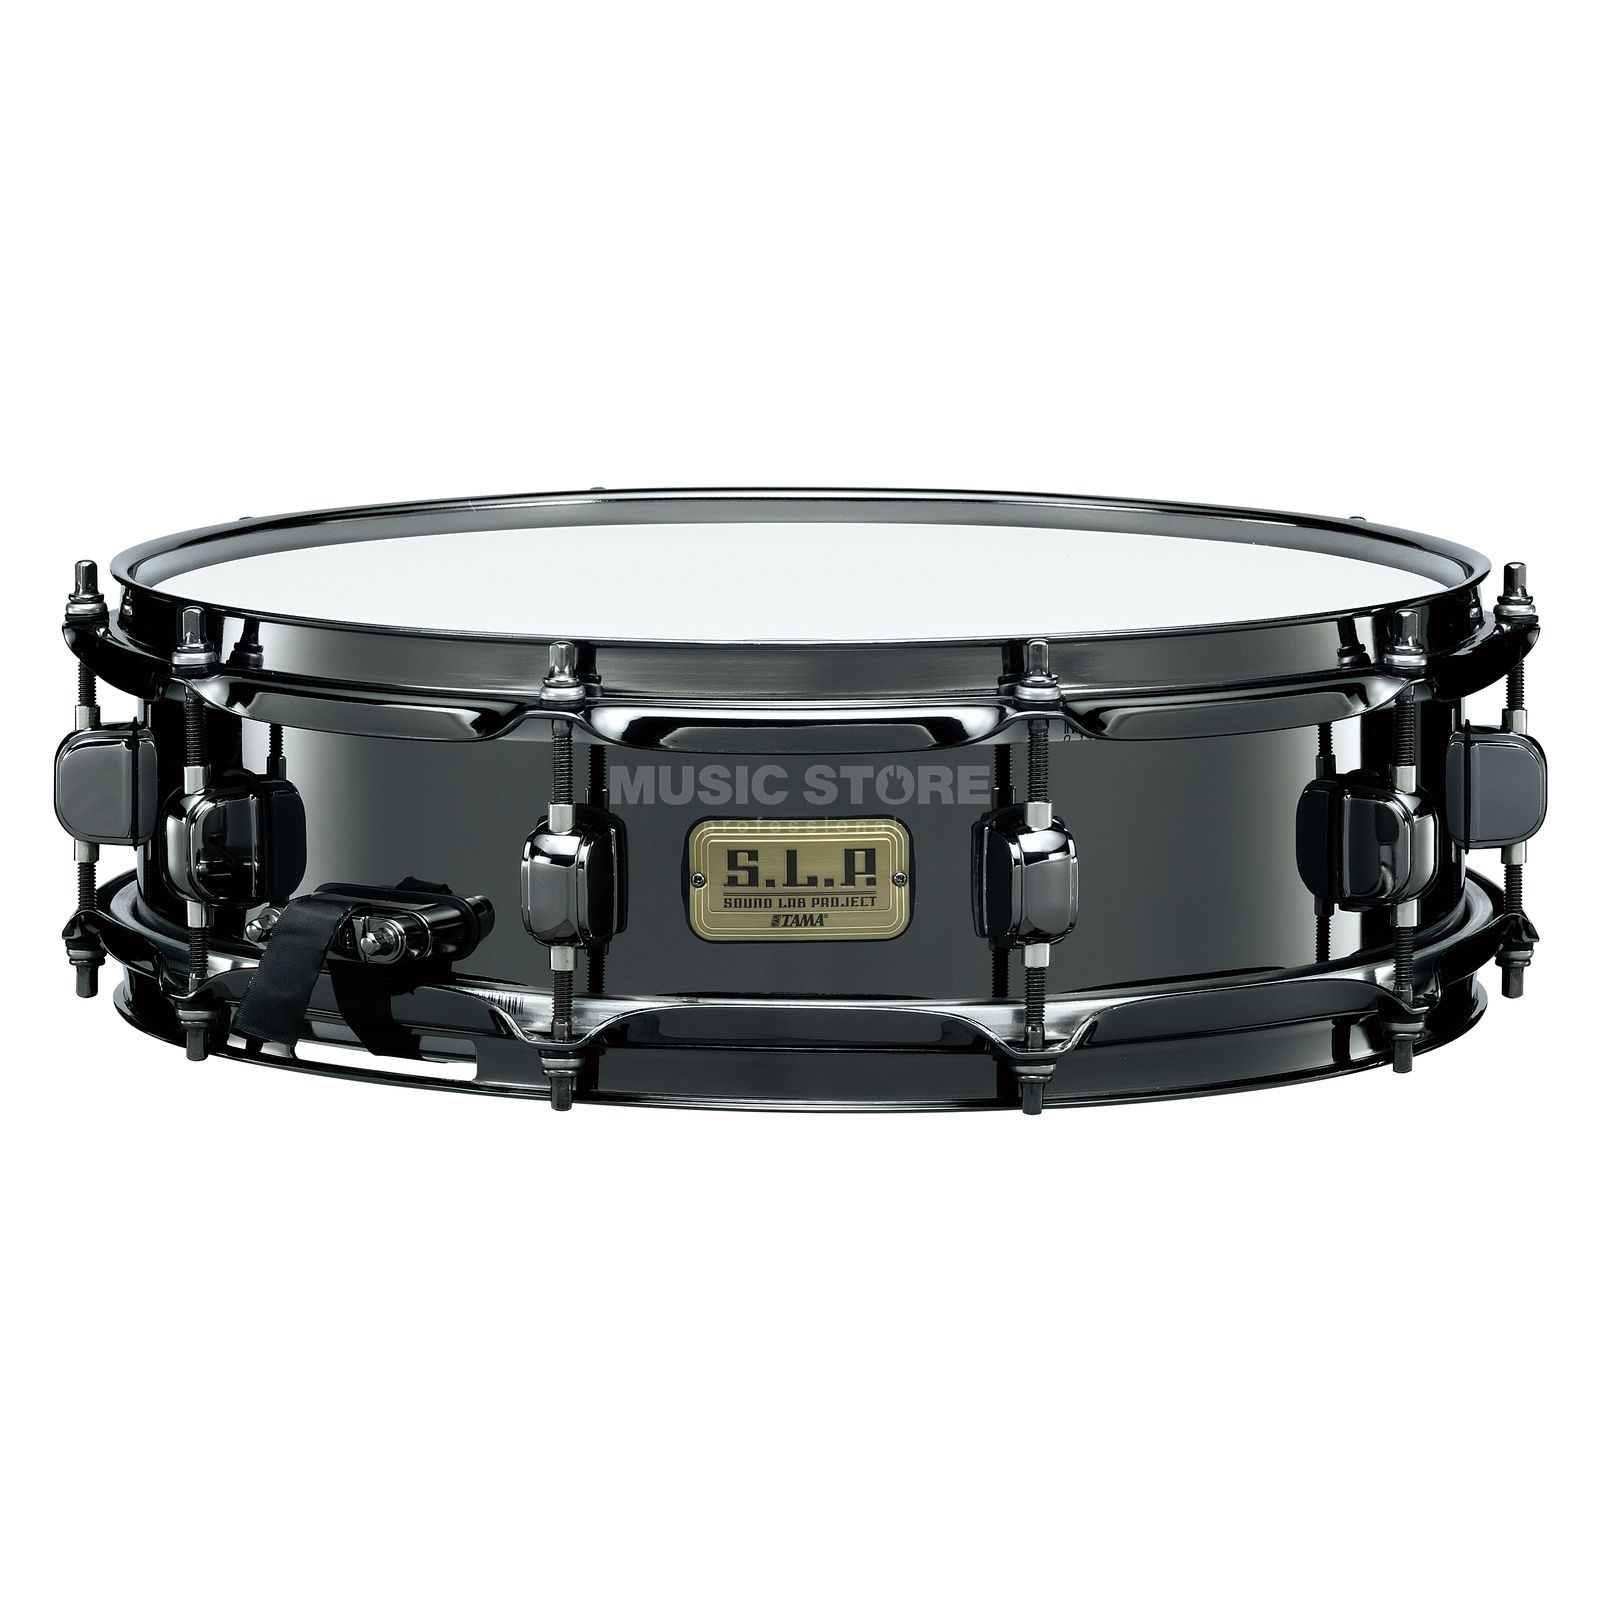 "Tama LBR144 S.L.P. Snare 14""x4"" Black Nickel Product Image"